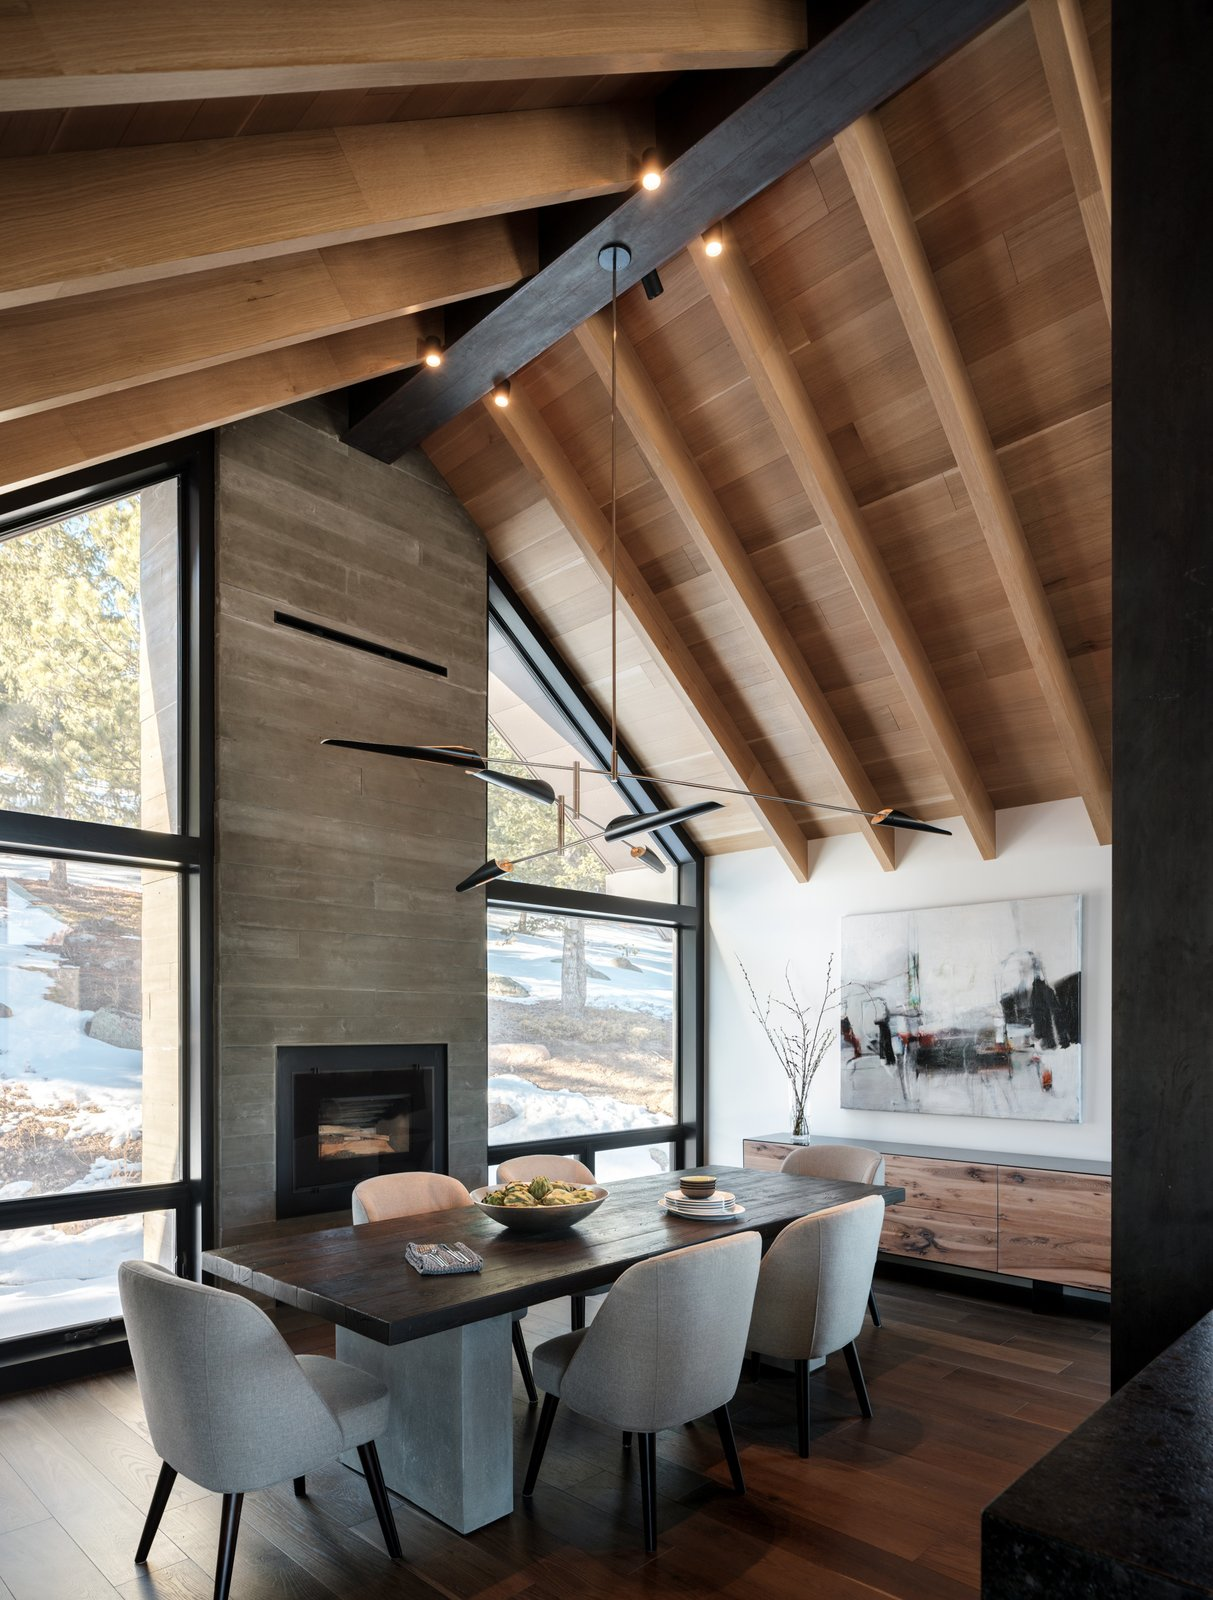 Dining Room, Table, Accent Lighting, Chair, Storage, Pendant Lighting, Dark Hardwood Floor, and Gas Burning Fireplace Dining rooms don't have to be overly formal and stuffy. We especially love the custom credenza and the Sarus Mobile  Modern Cabin by HMHAI